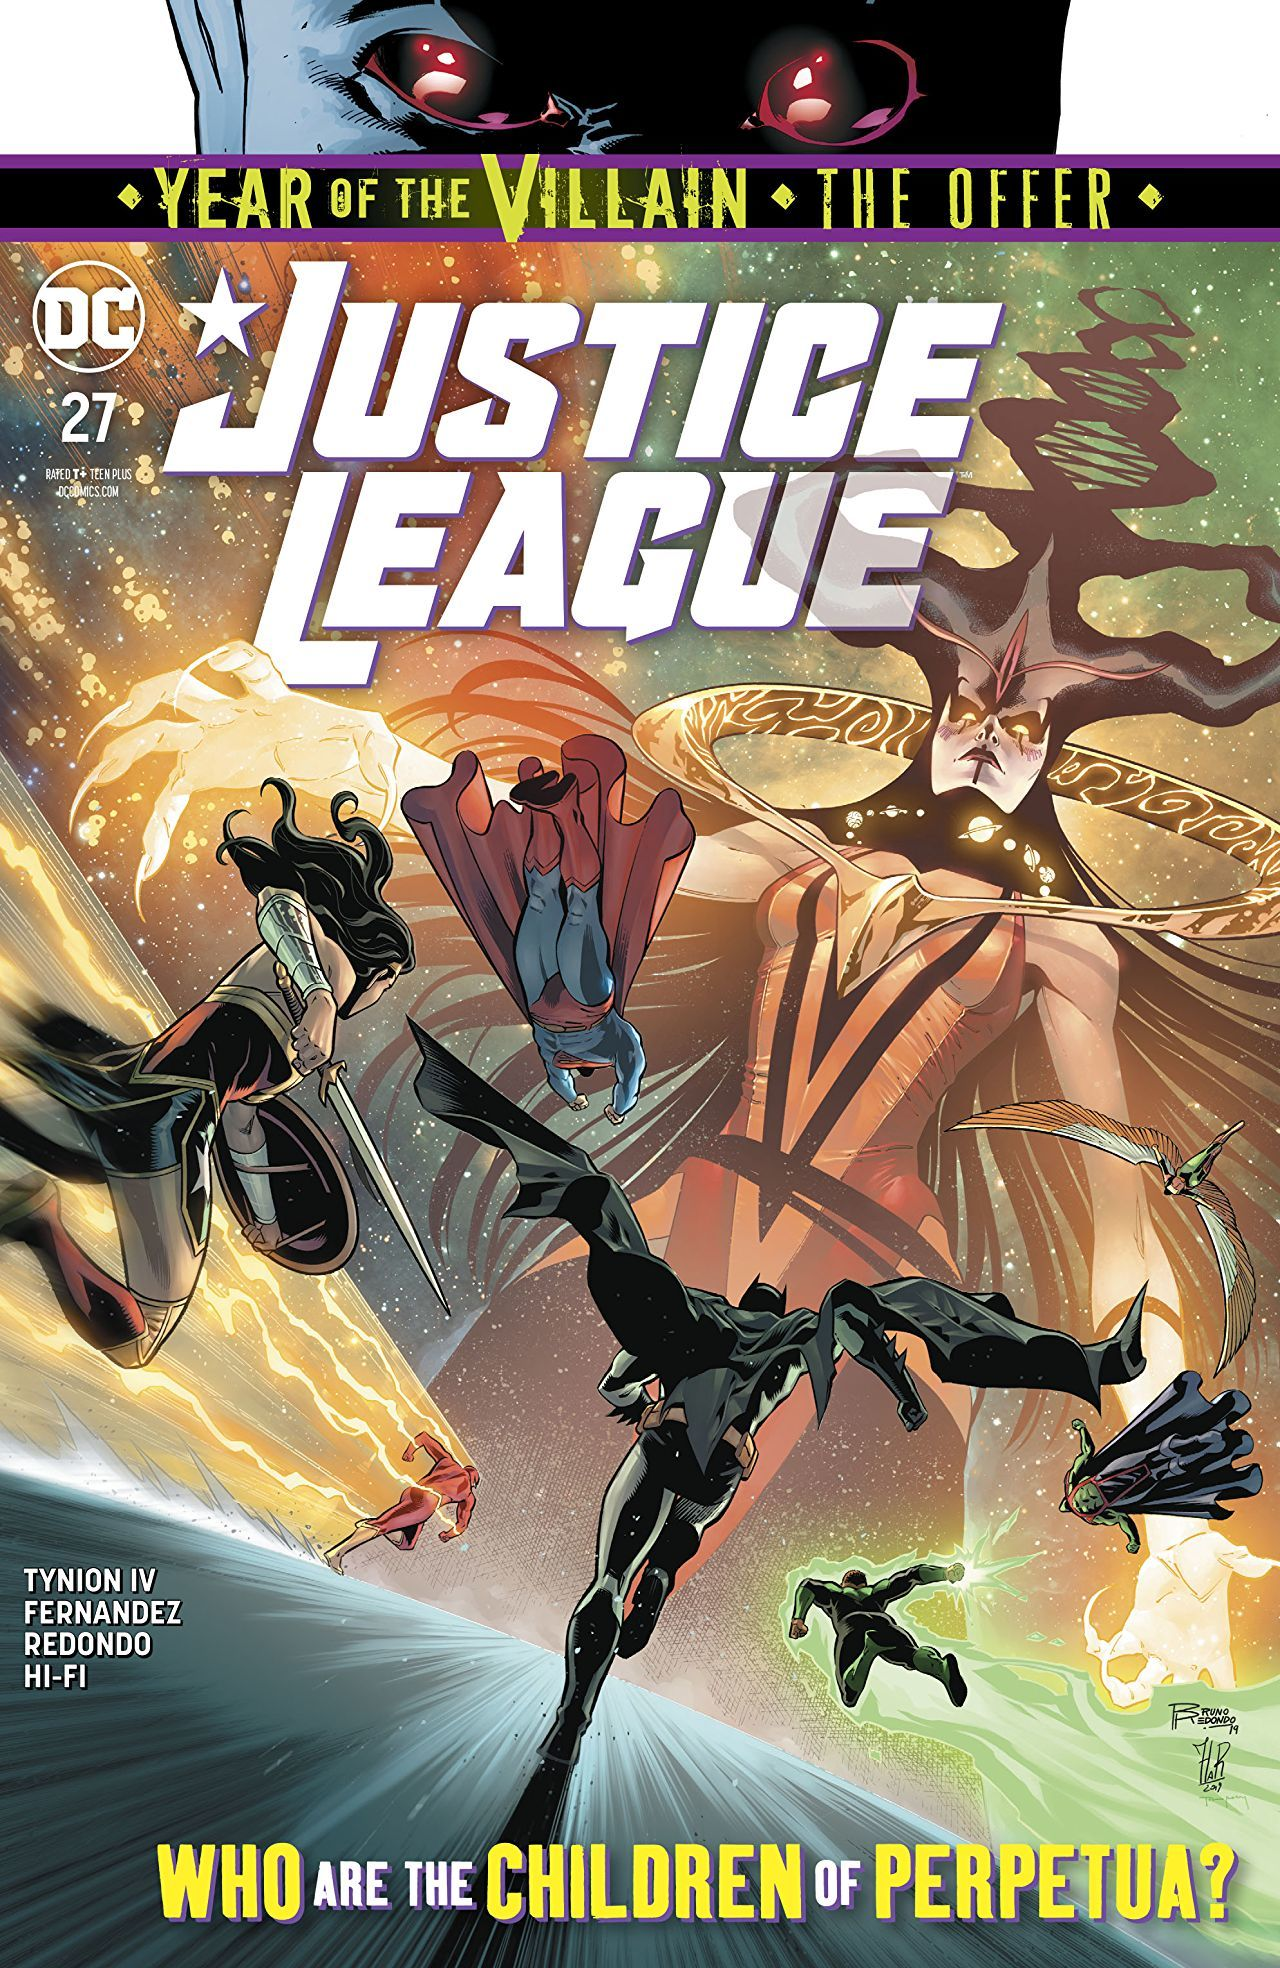 Justice League #27 Cover